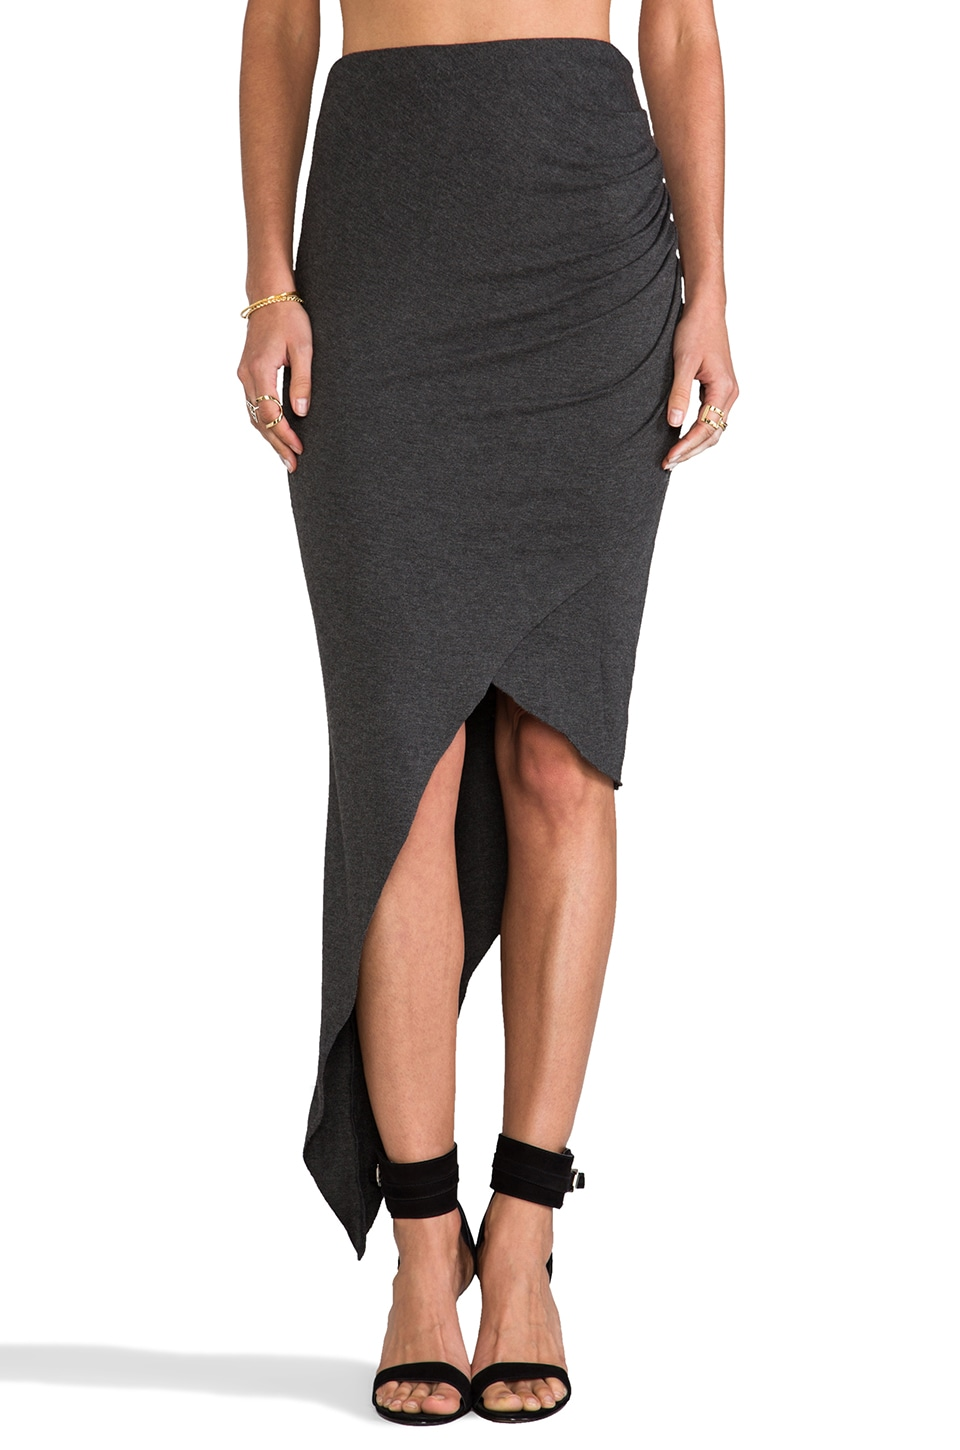 sen Estela Skirt in Charcoal Heather Grey